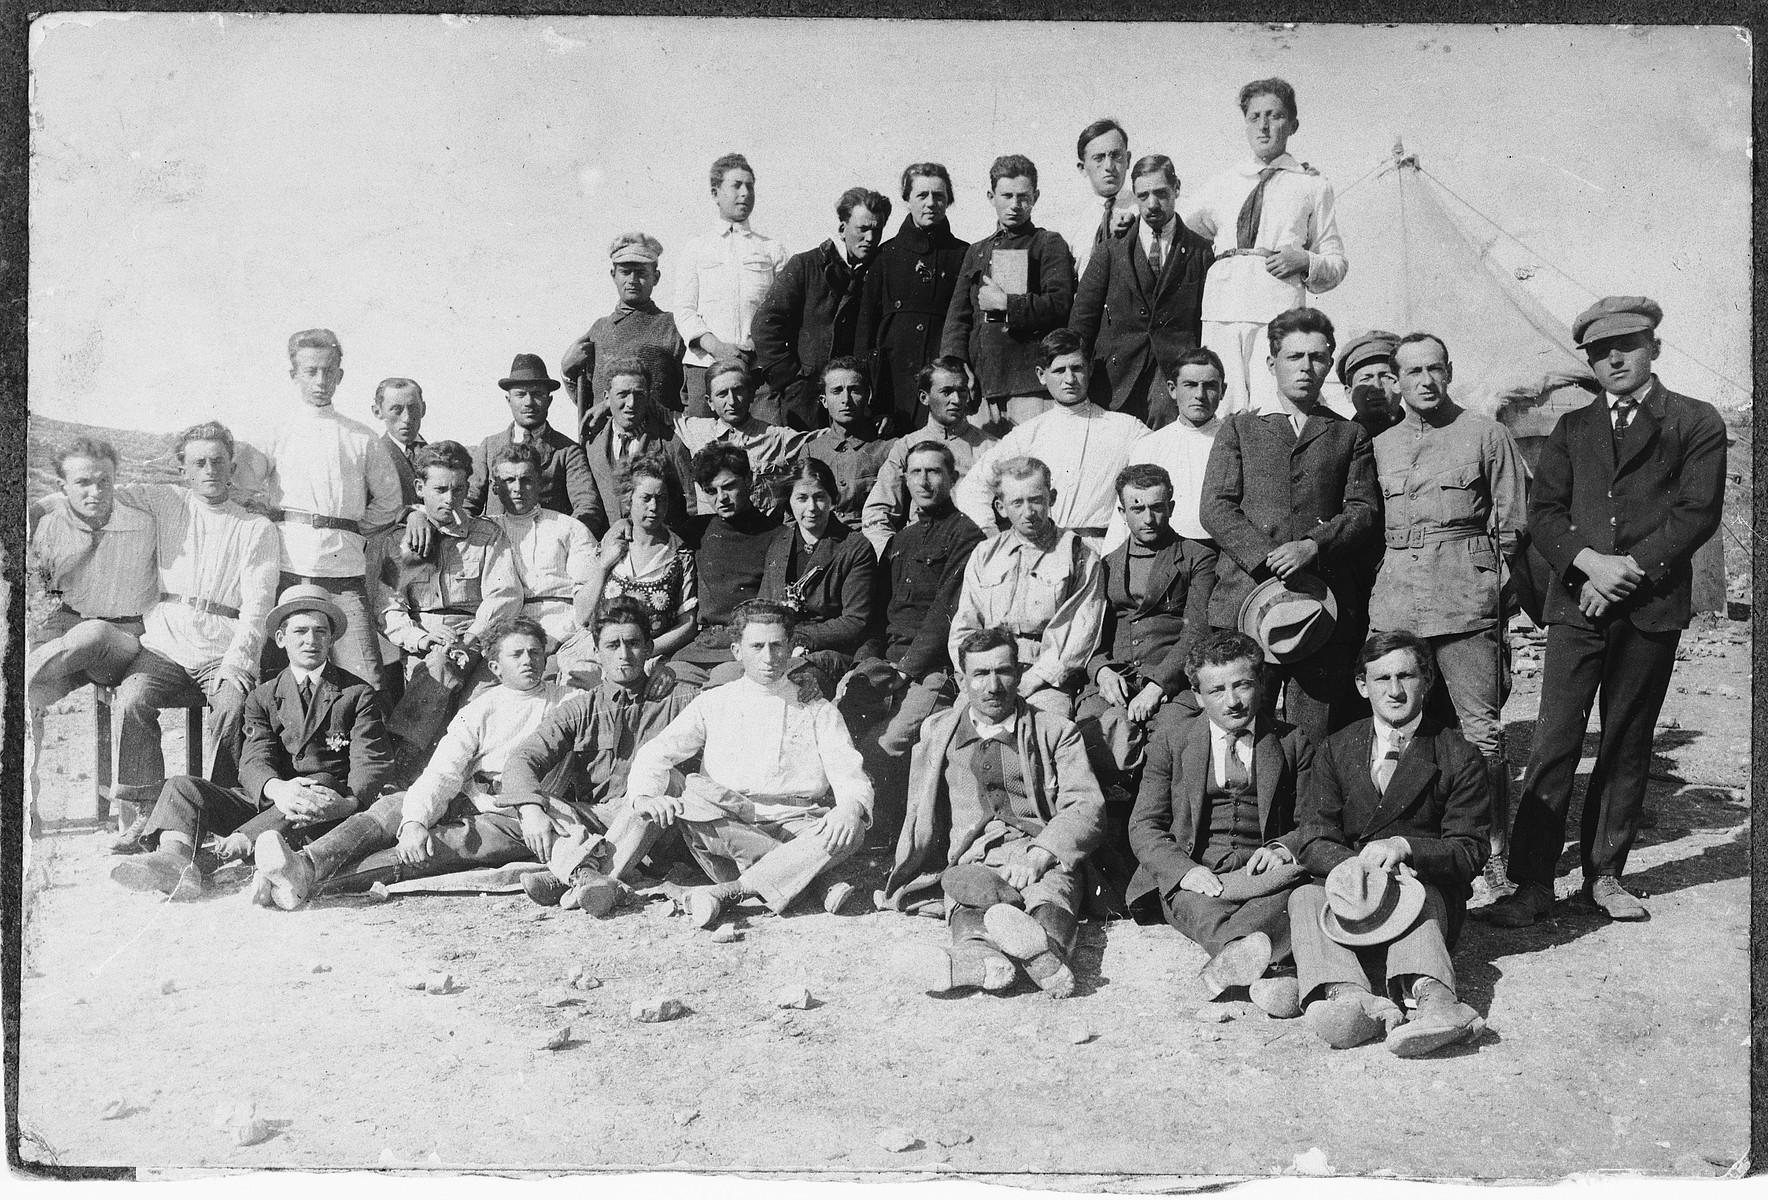 Pioneers in Palestine pose on a sandy plot where they hope to erect a new kibbutz.  Those pictured include Avraham Wagner.